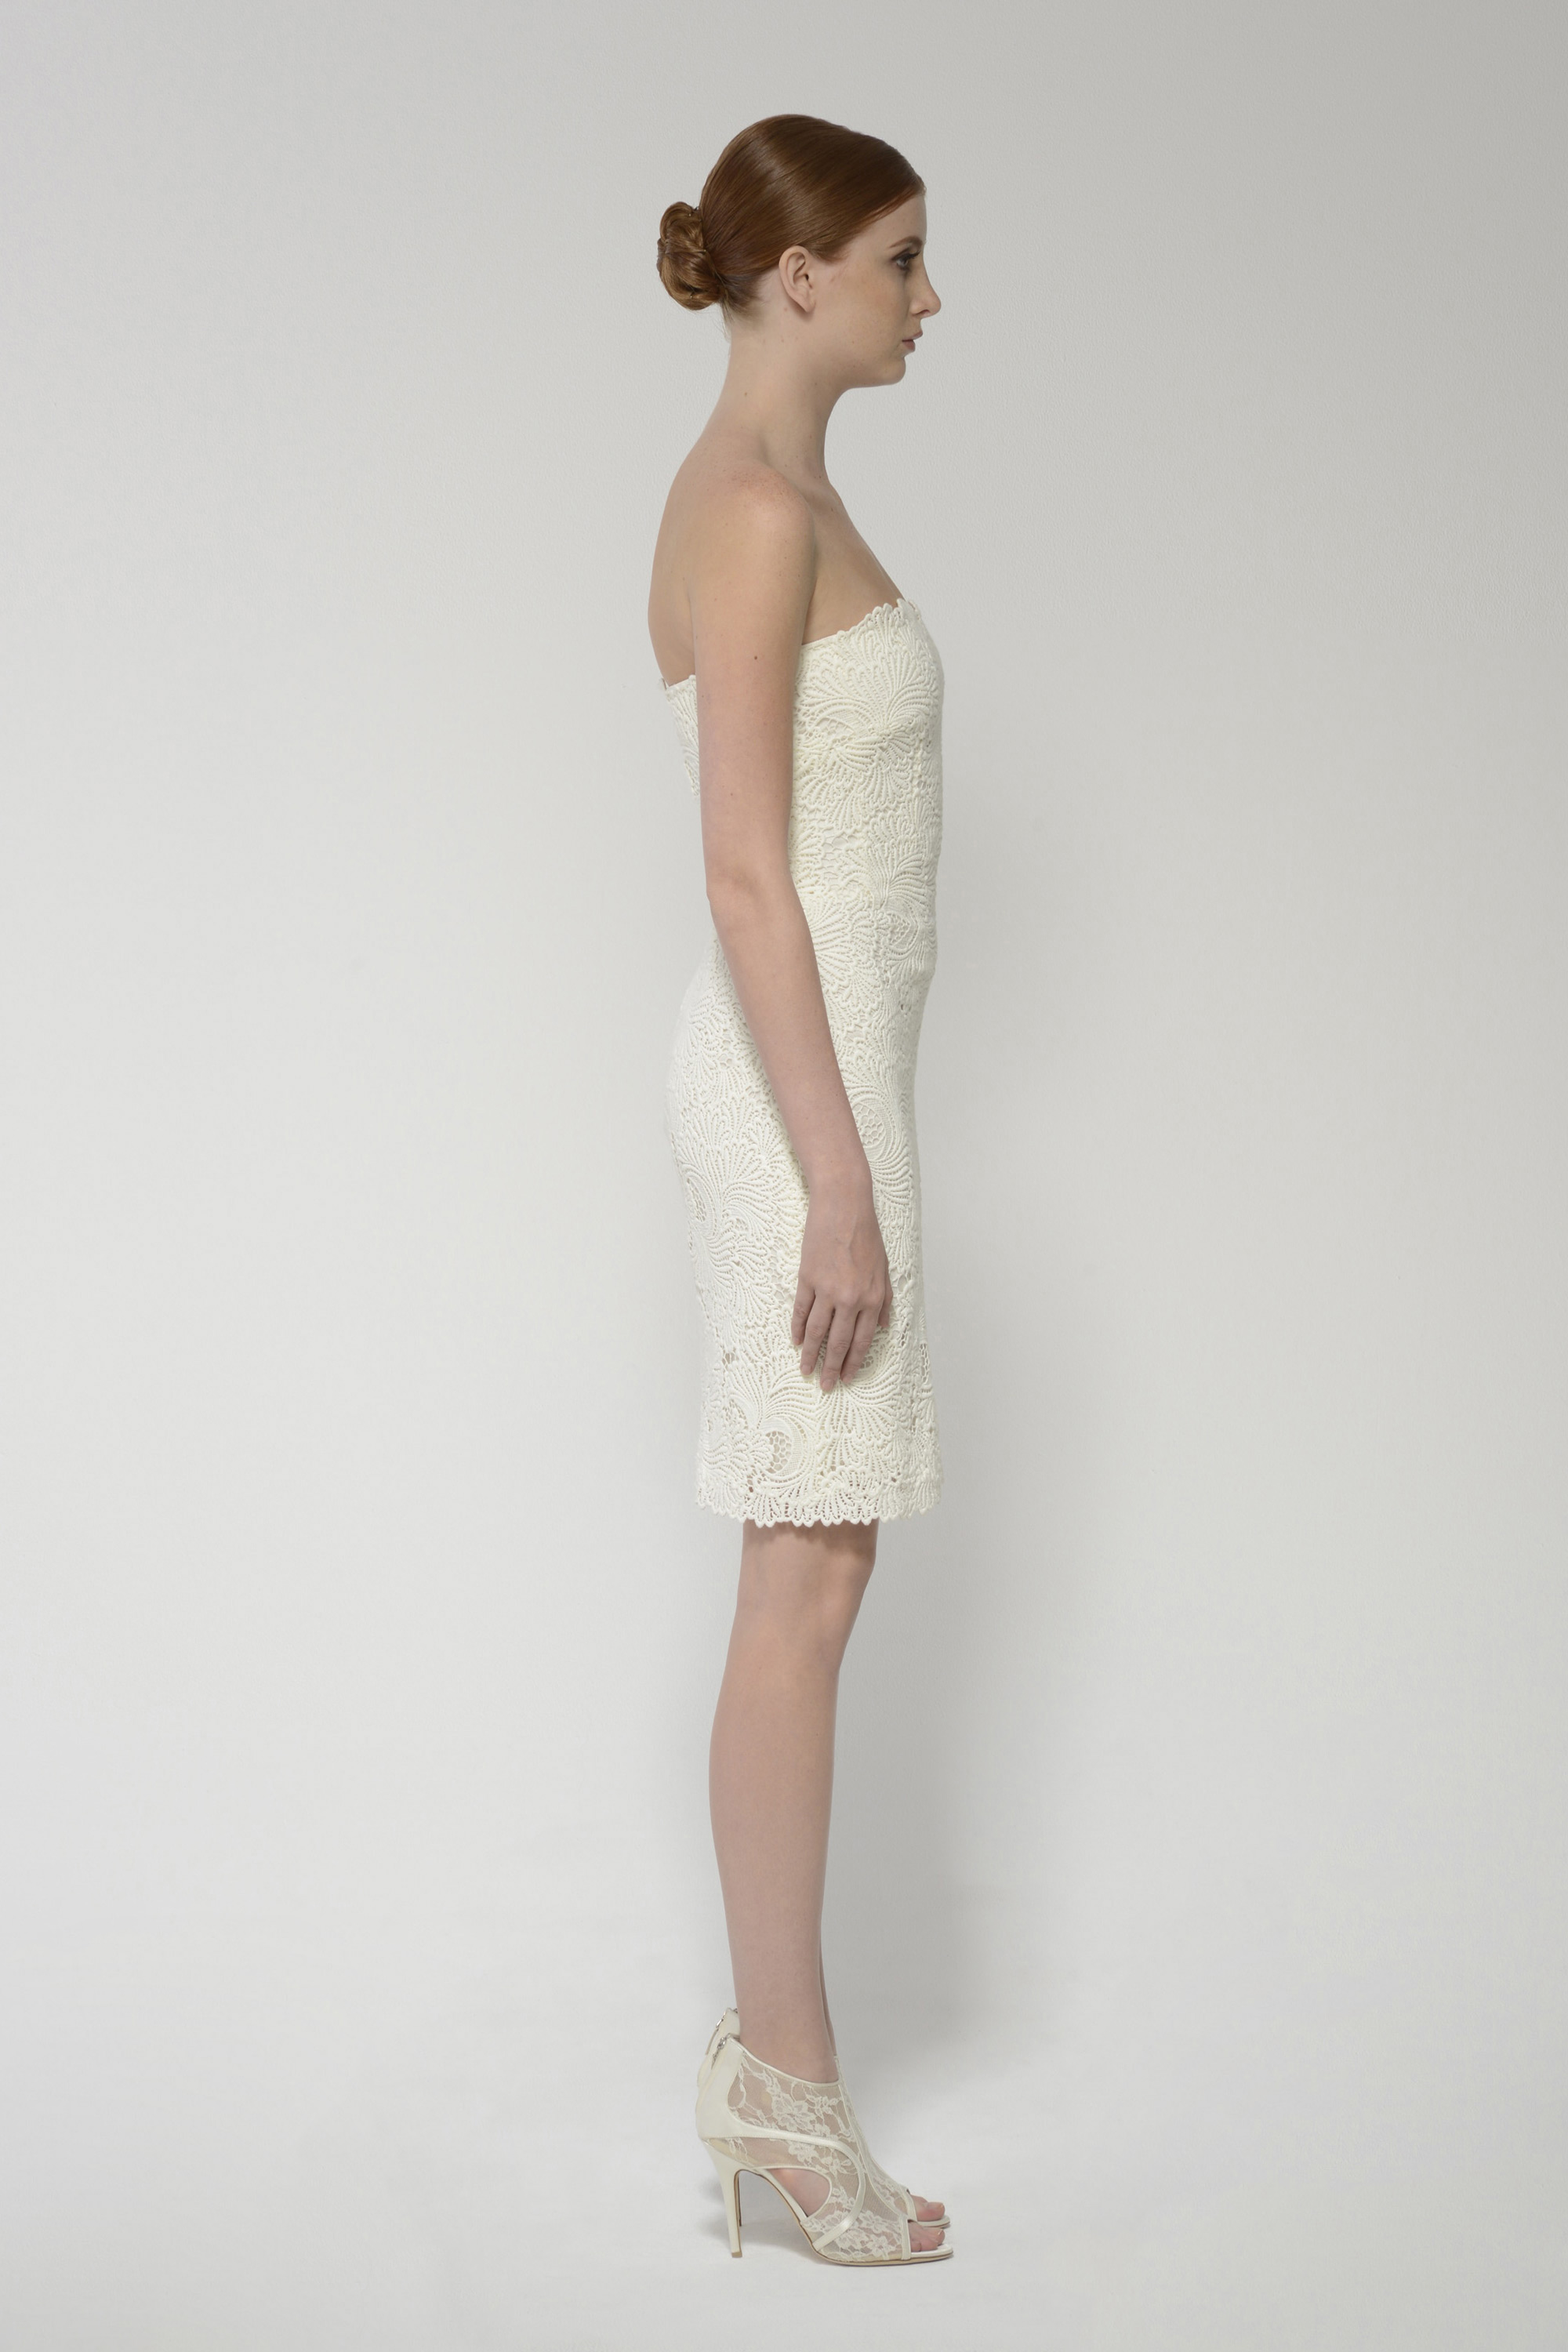 Andiedress ivory left 1